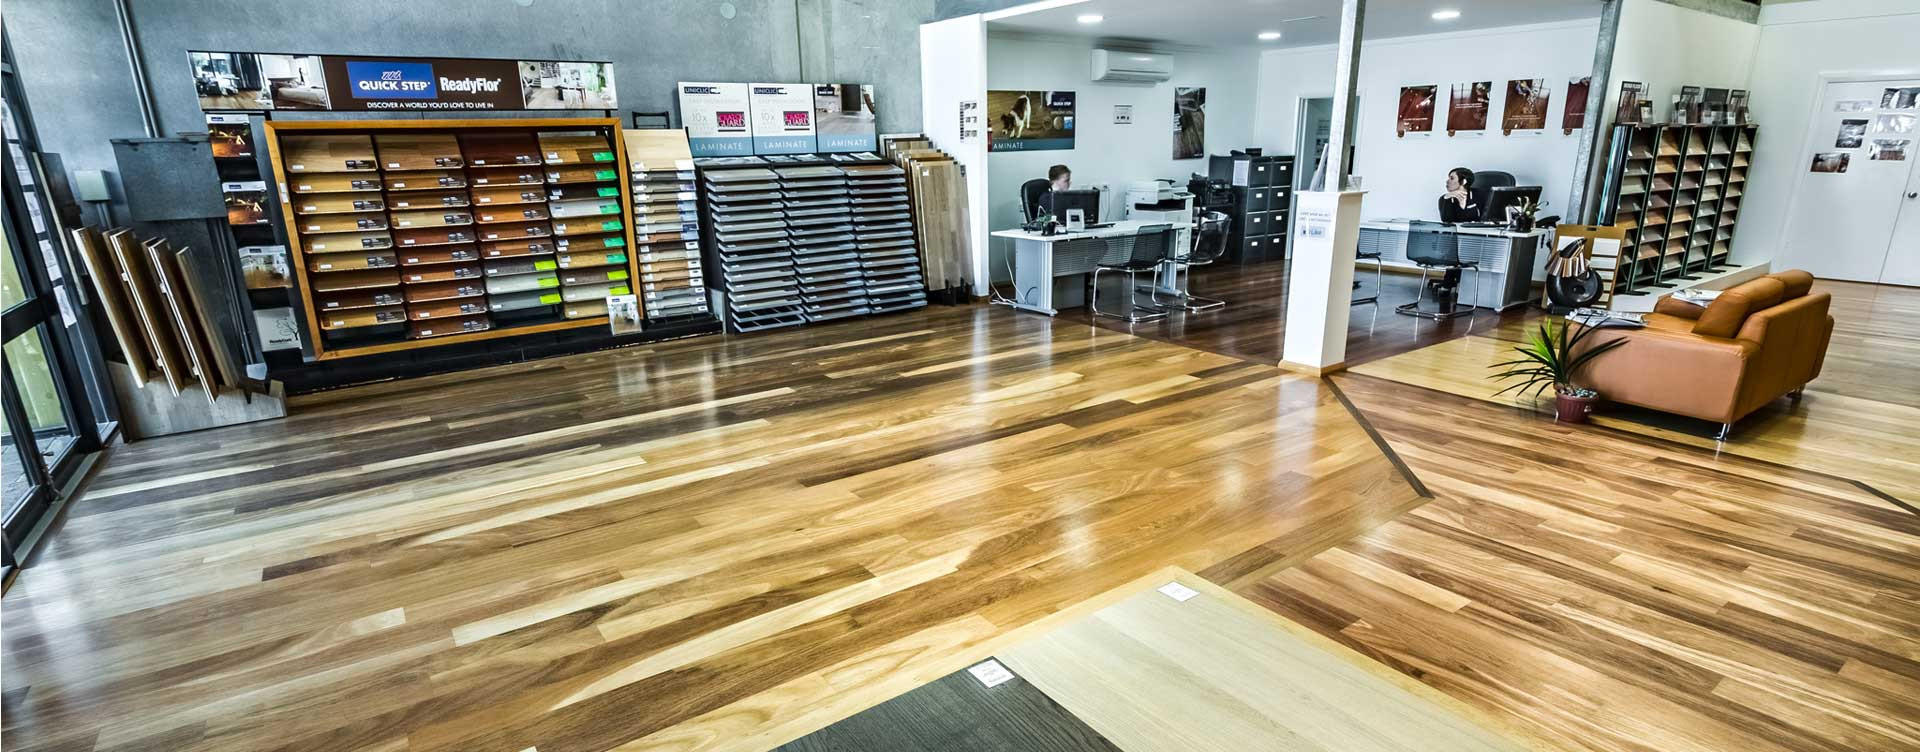 Discount Hardwood Flooring Baton Rouge Of Timber Flooring Perth Coastal Flooring Wa Quality Wooden for thats why they Call Us the Home Of Fine Wood Floors